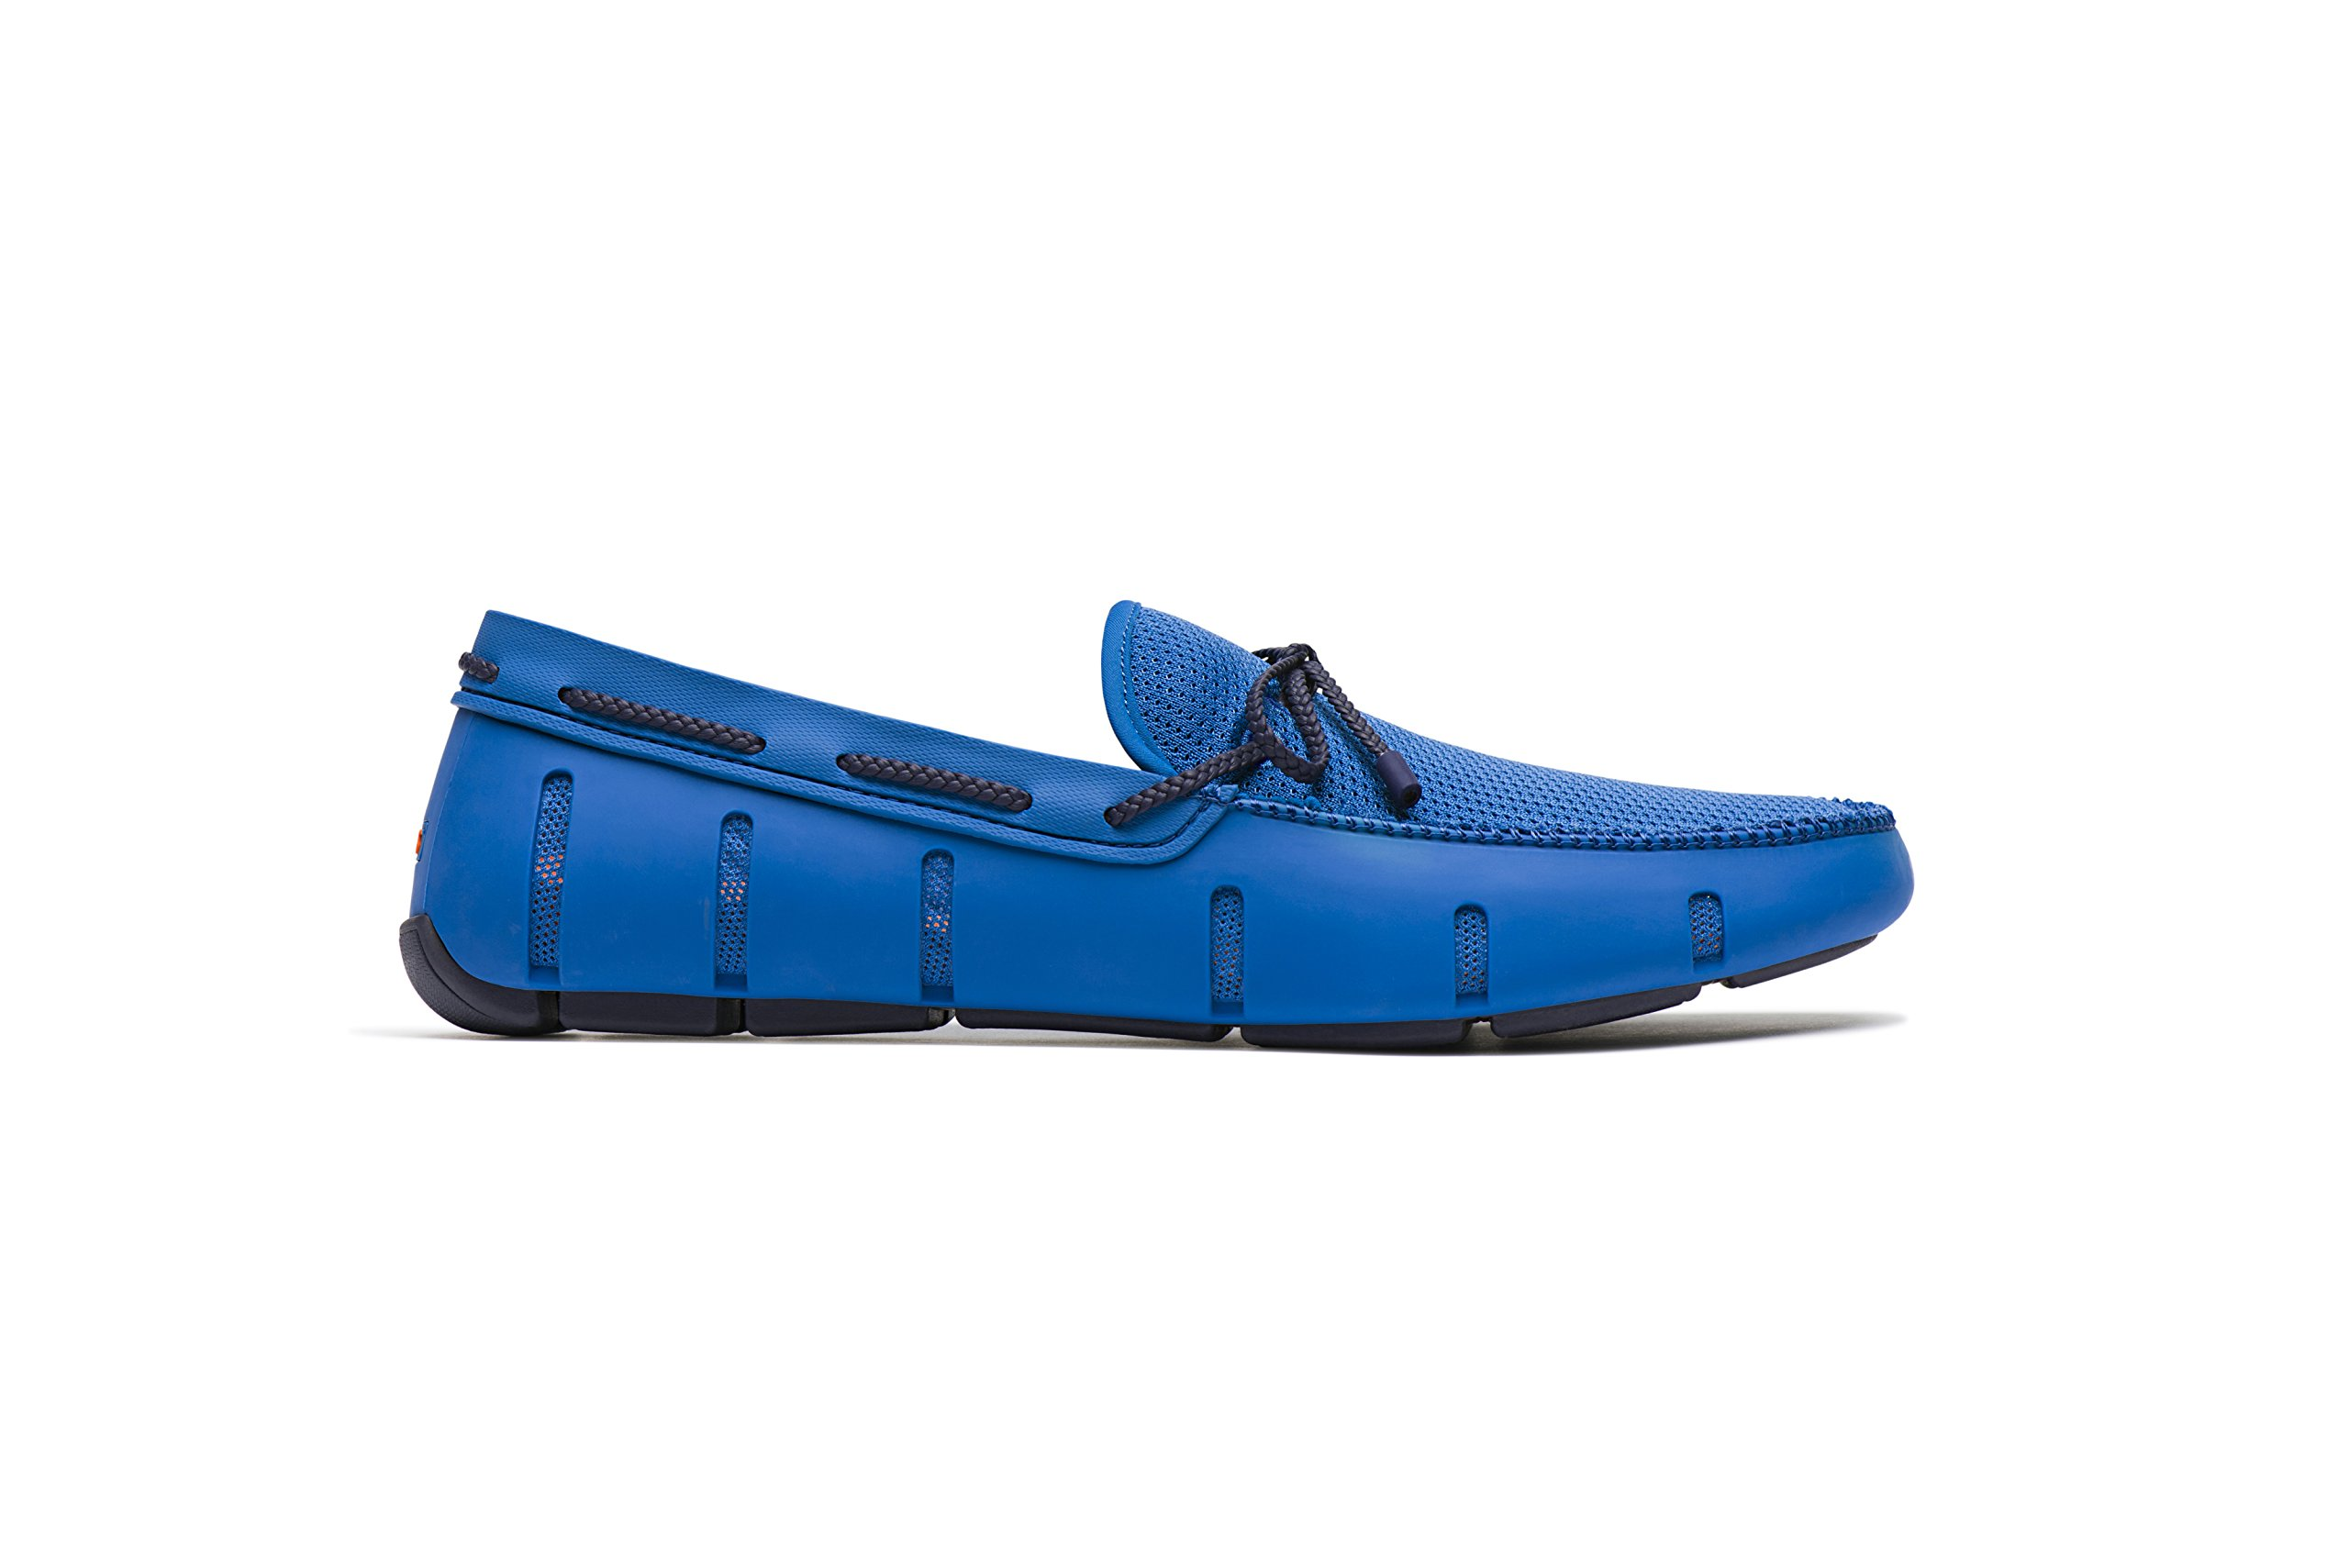 SWIMS Men's Braided Lace Loafer for Pool - Blitz Blue/Navy, 12